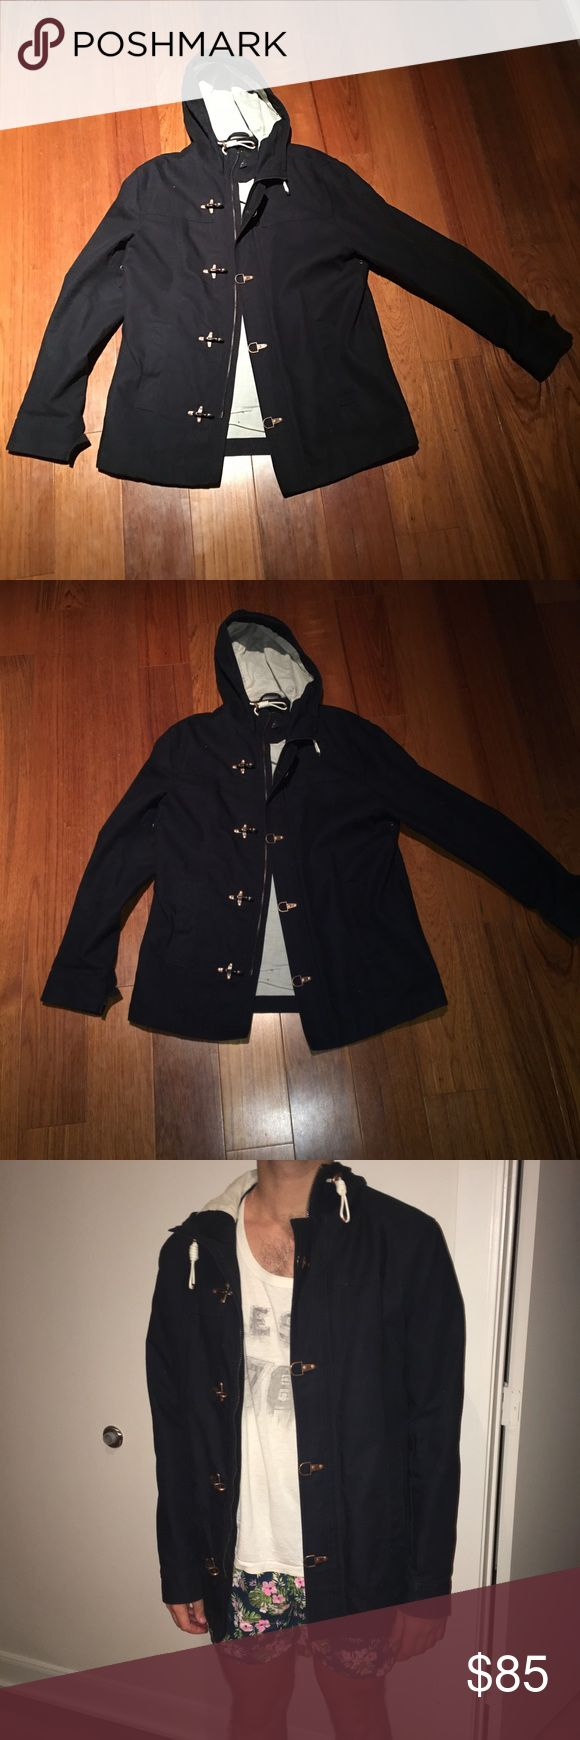 H&M Jacket Size 42 R-H&M Brand! Perfect condition-never worn H&M Jackets & Coats Pea Coats